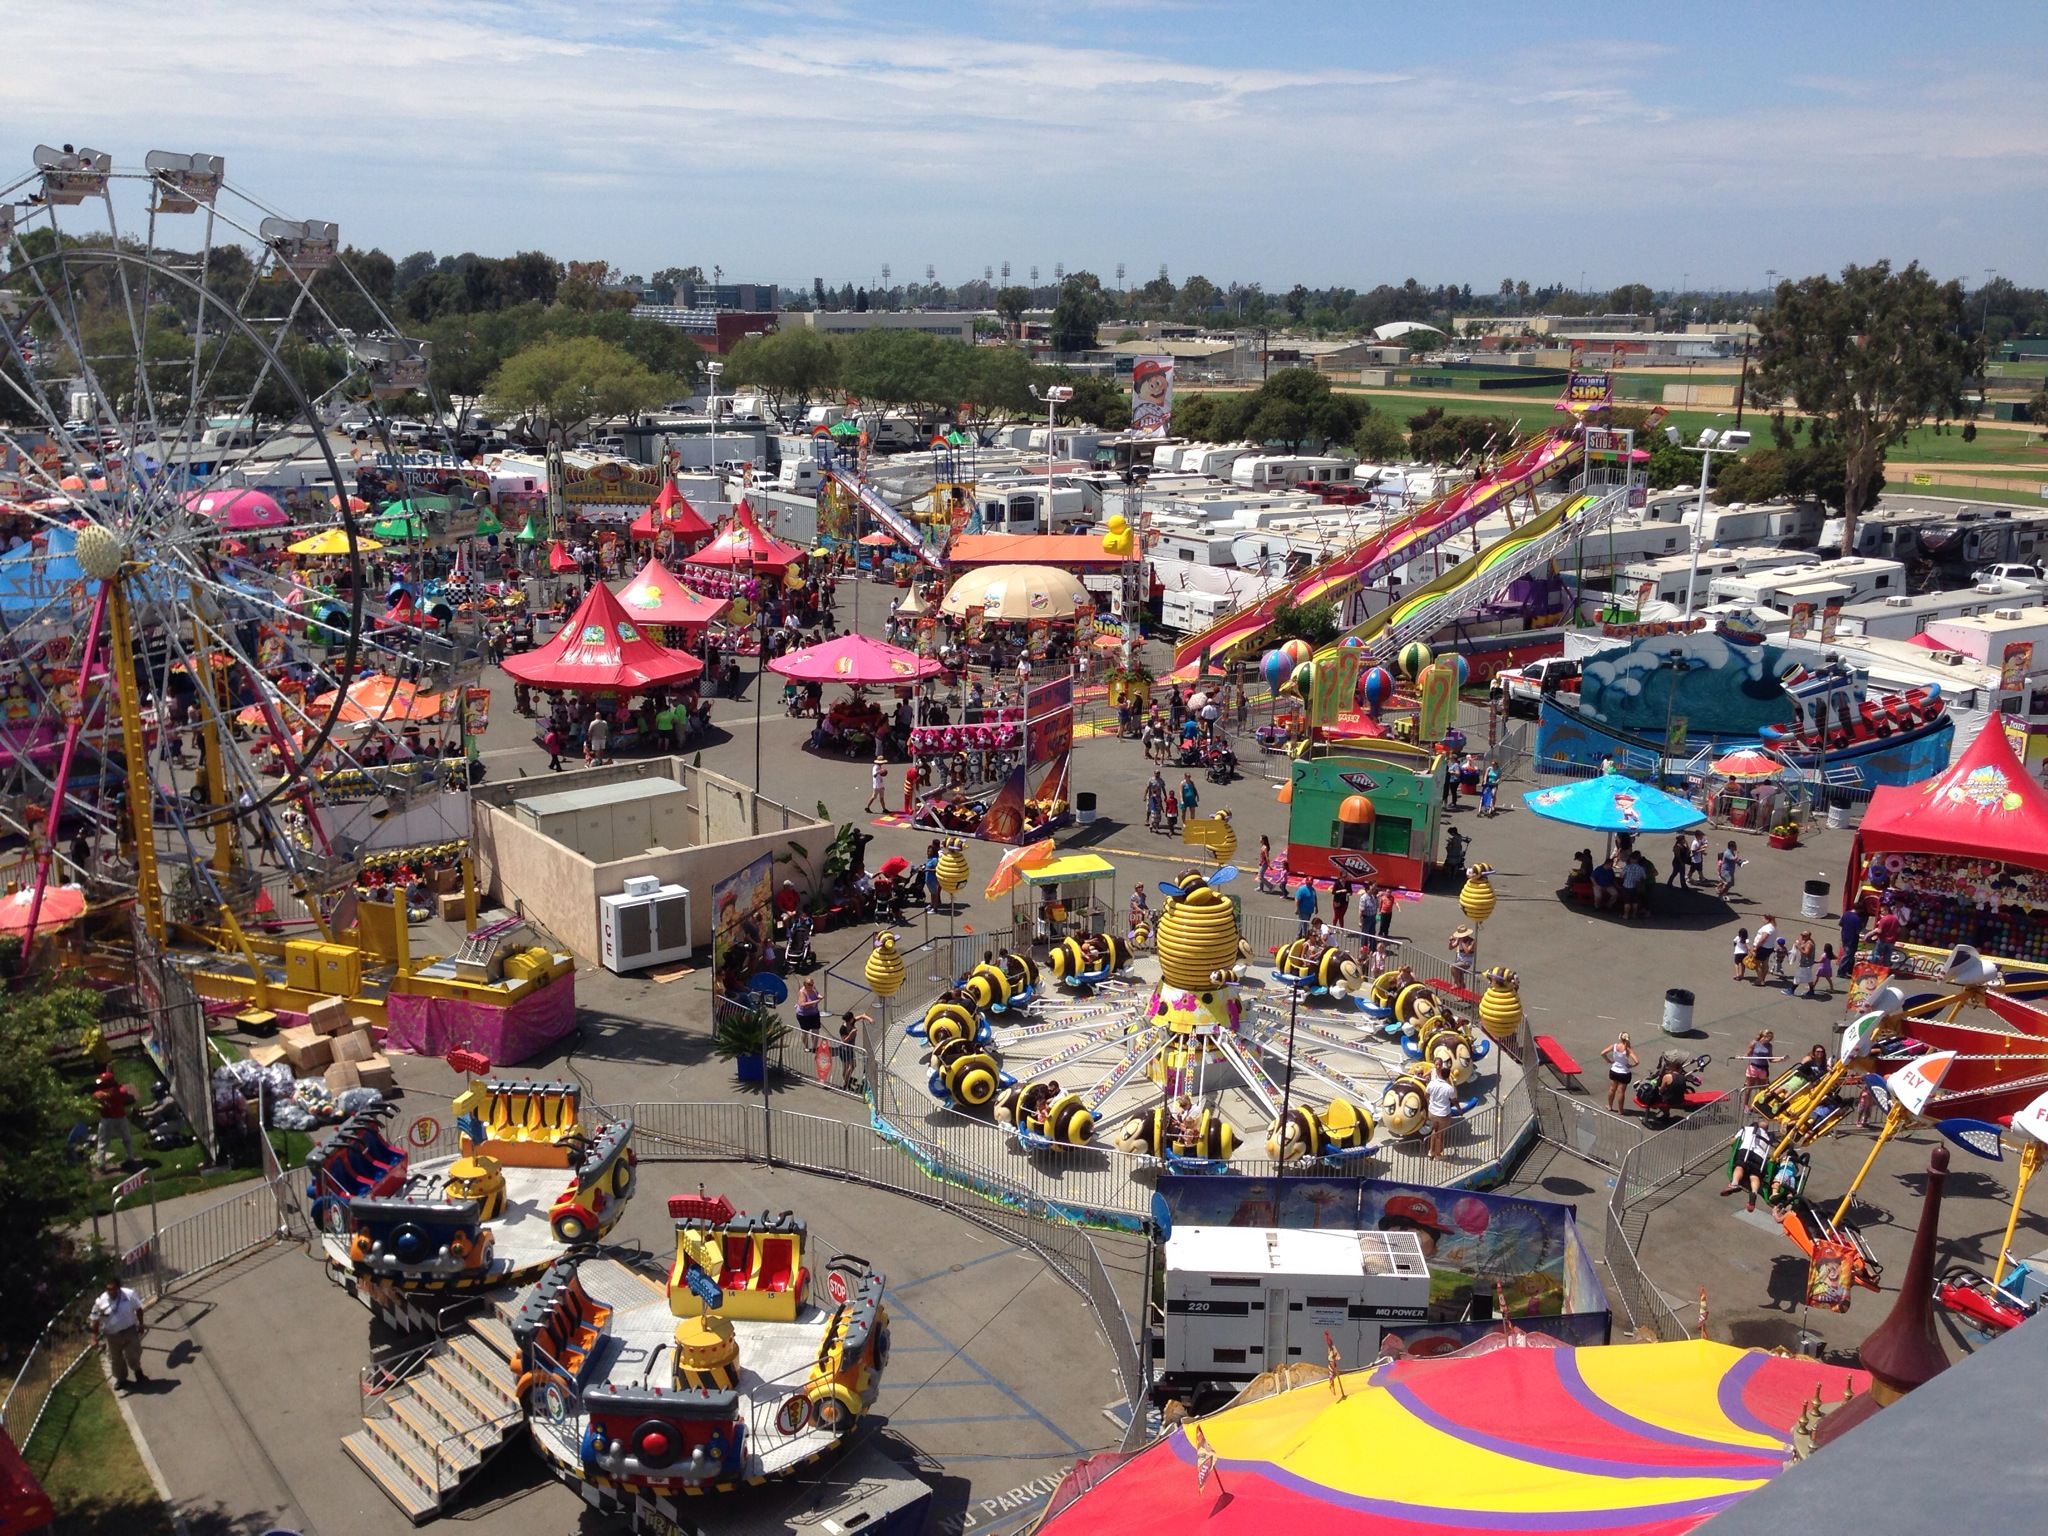 A Day of Festivity and Fun at Orange County's Annual Fair